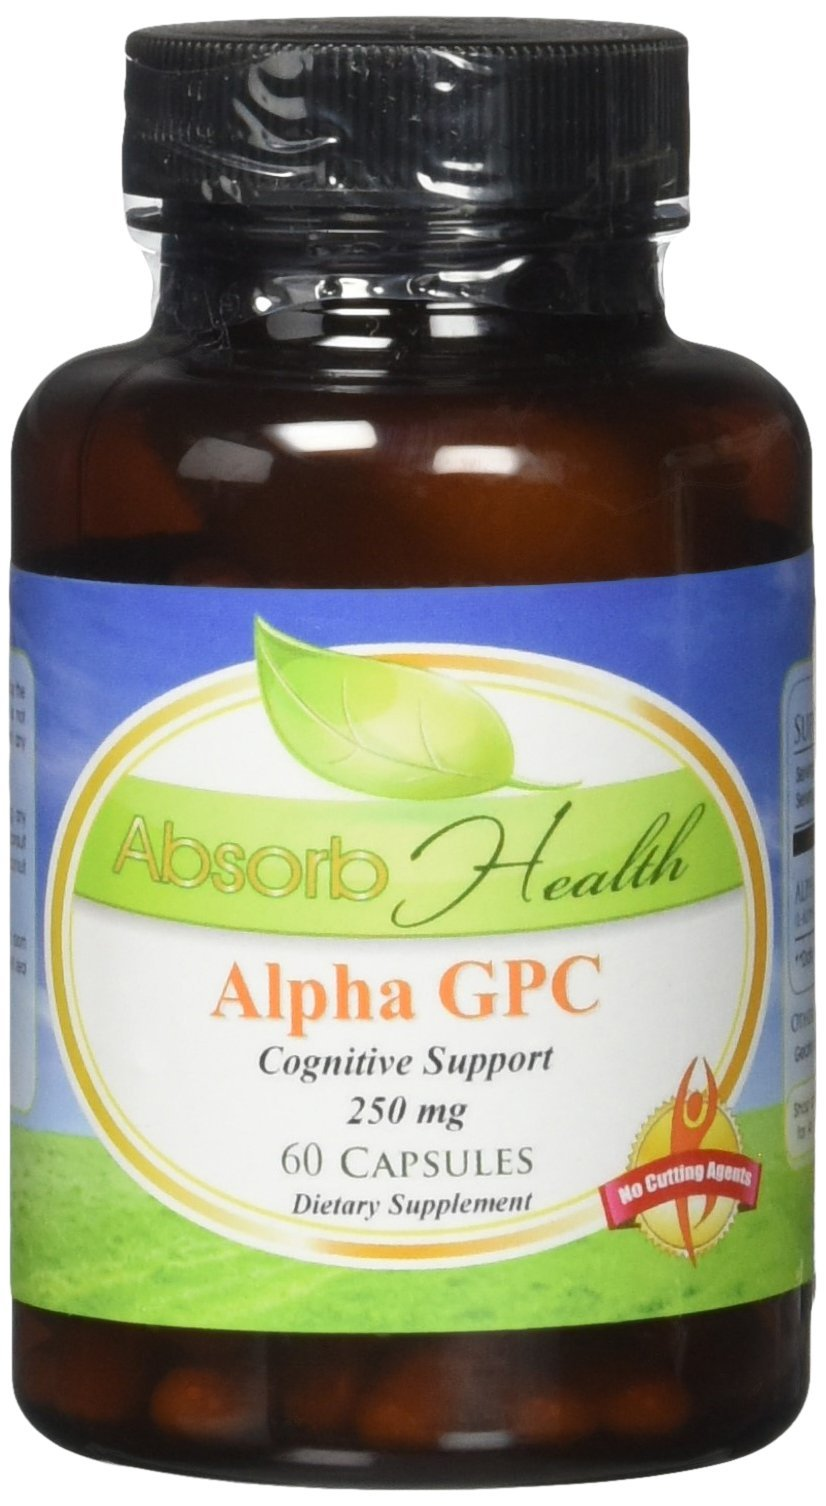 Absorb Health Alpha Gpc 250mg Capsules, 60 Count